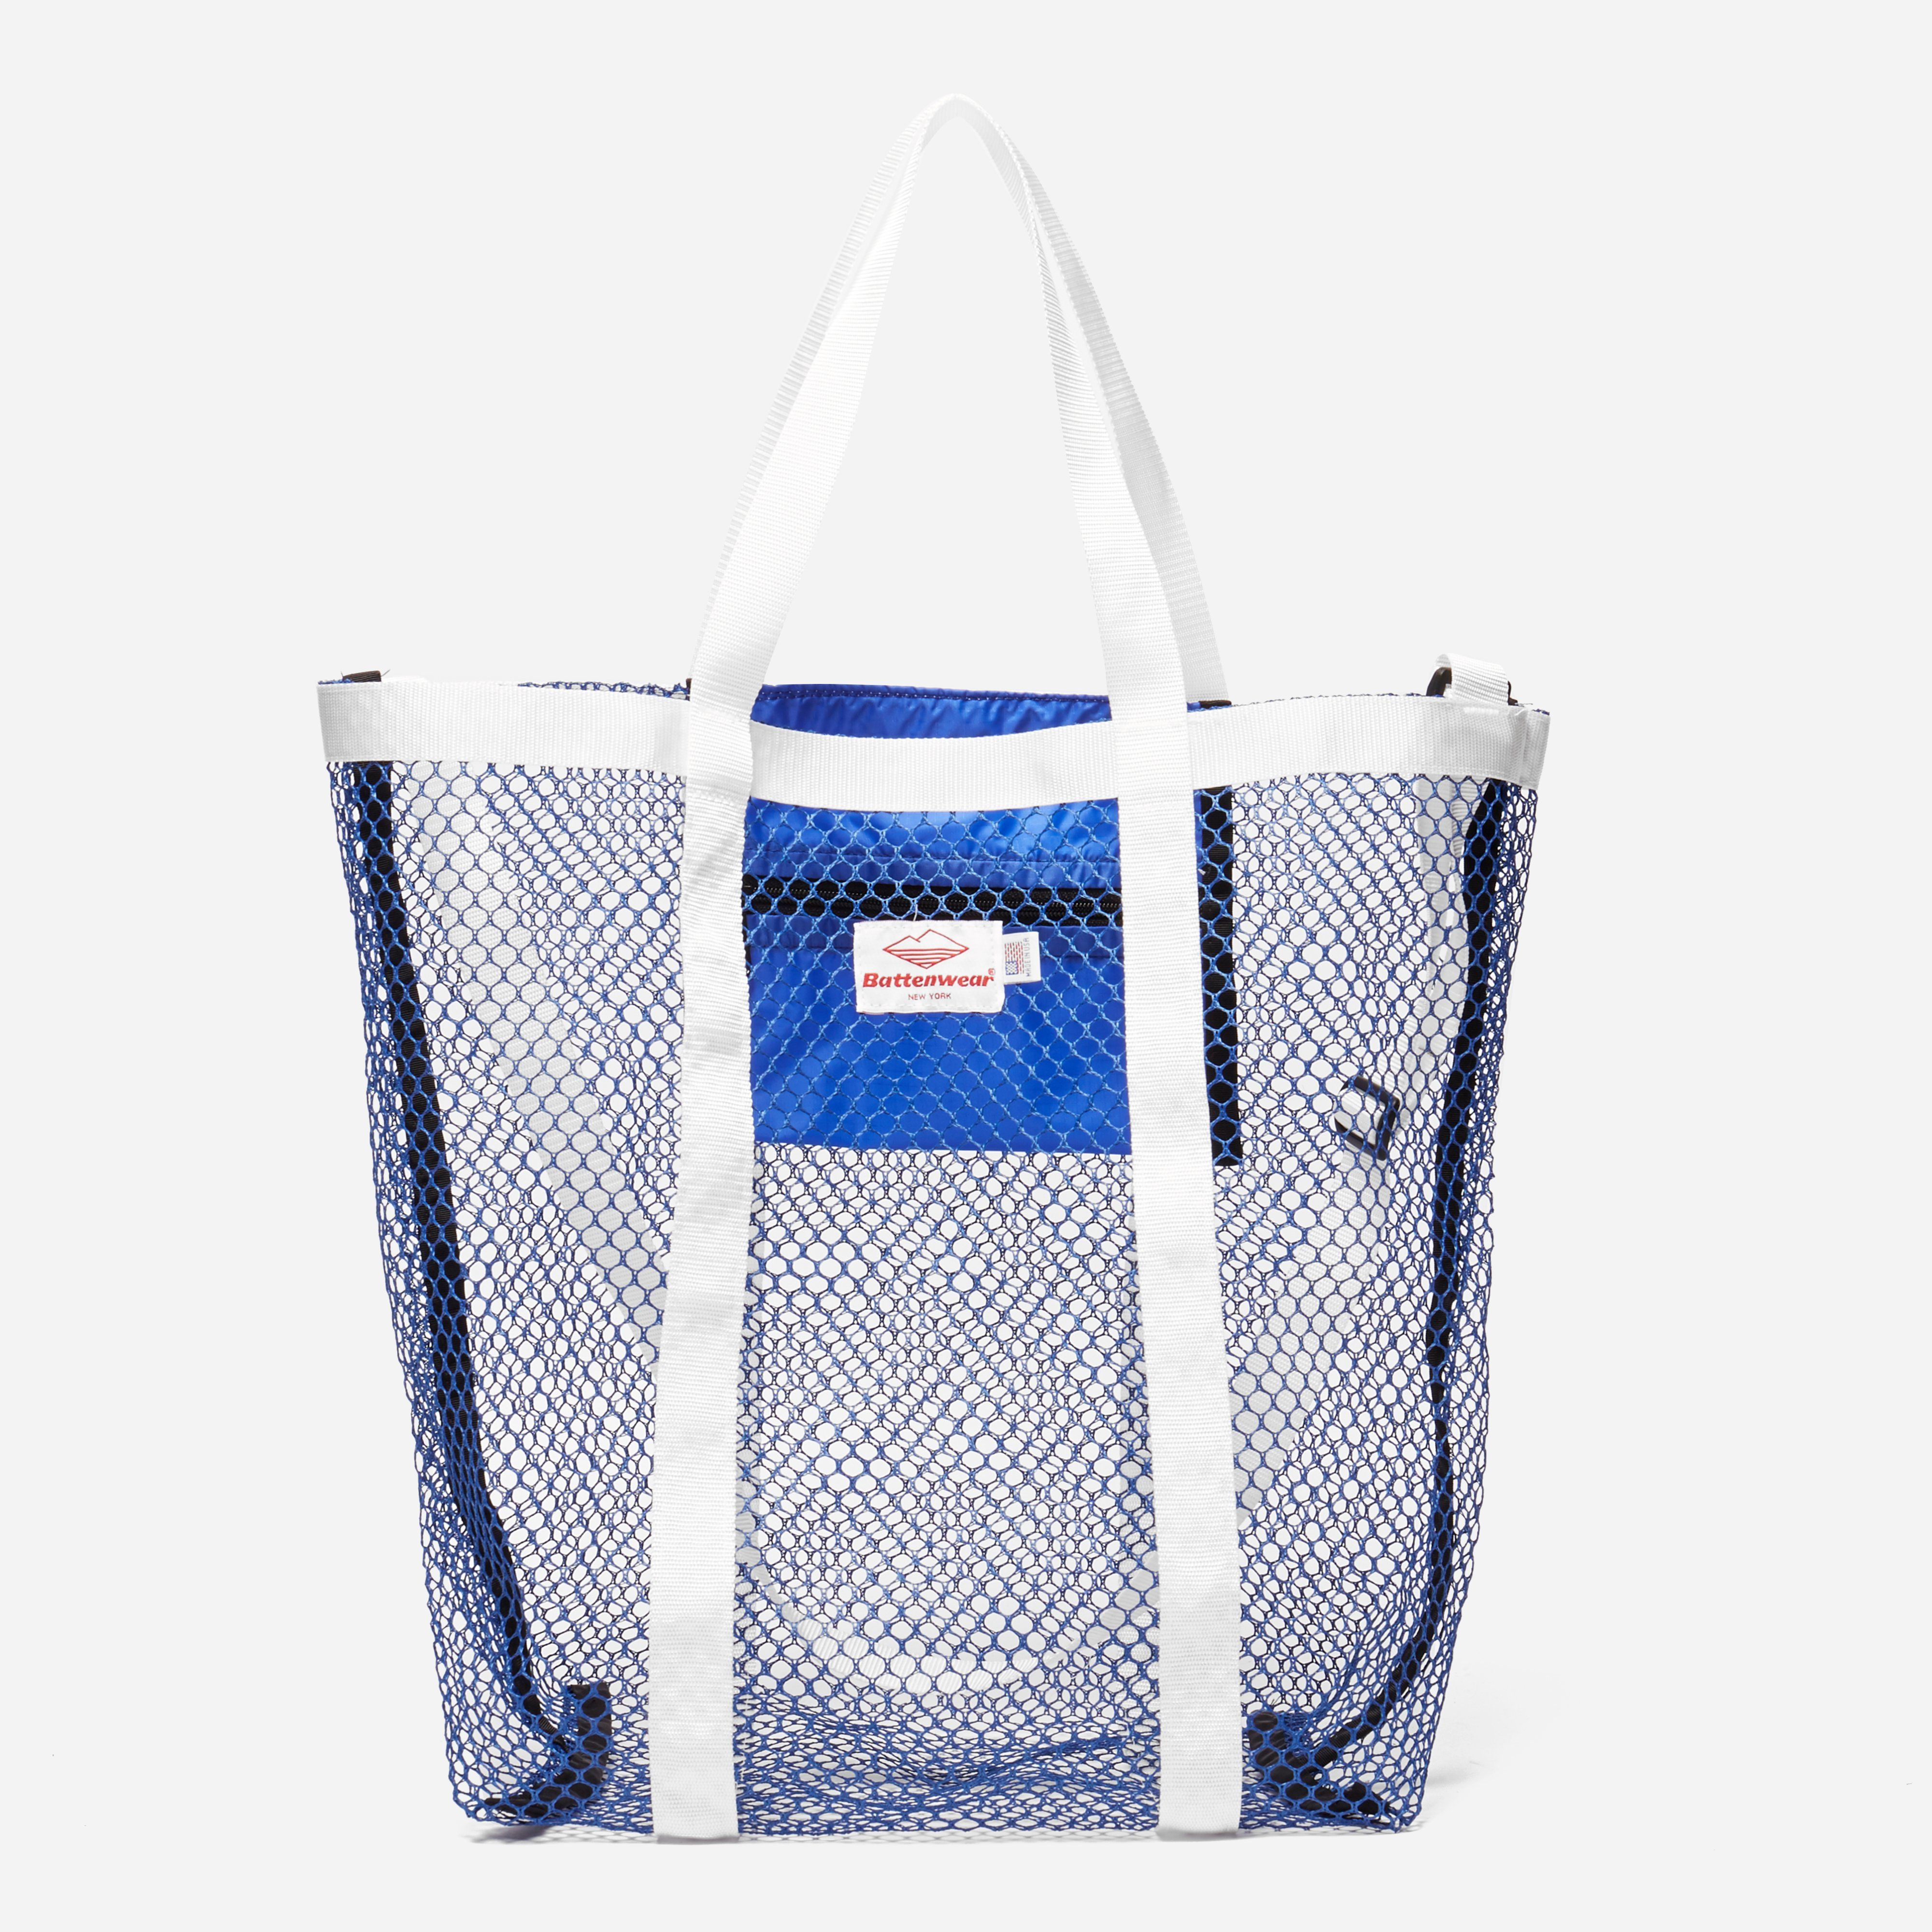 Battenwear Mesh Tote Bag